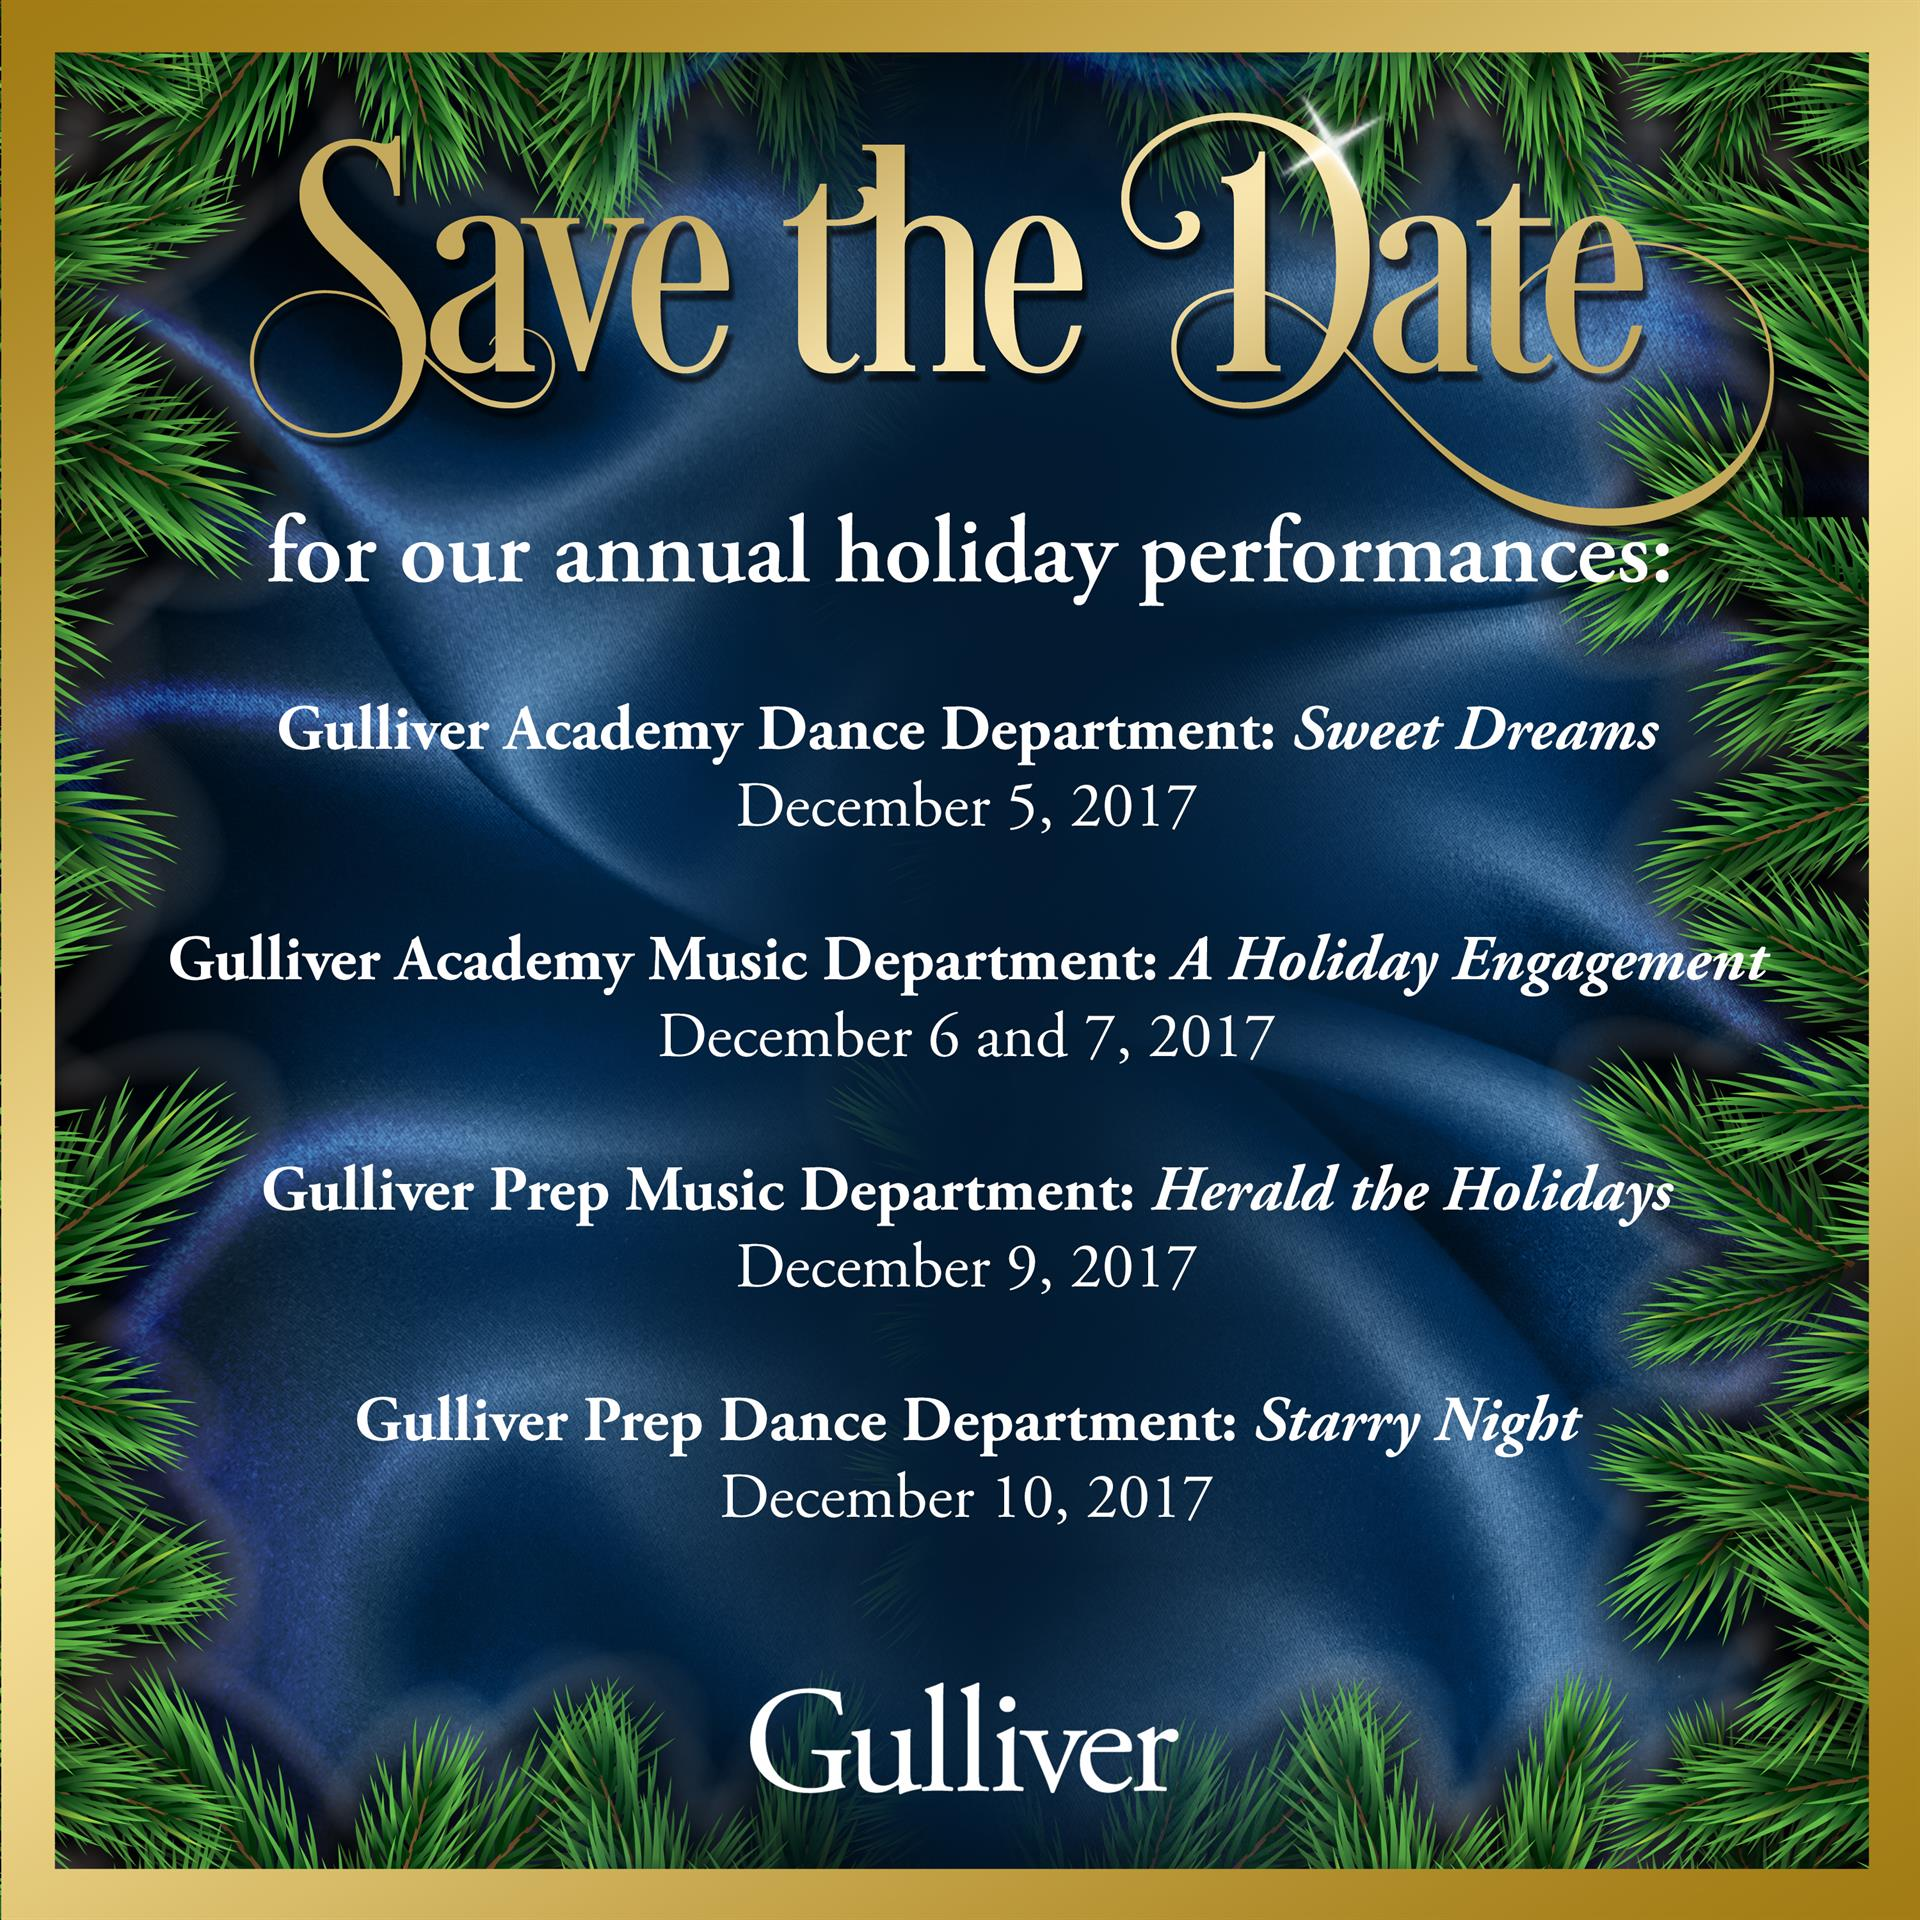 Save the date for 2017 holiday performances